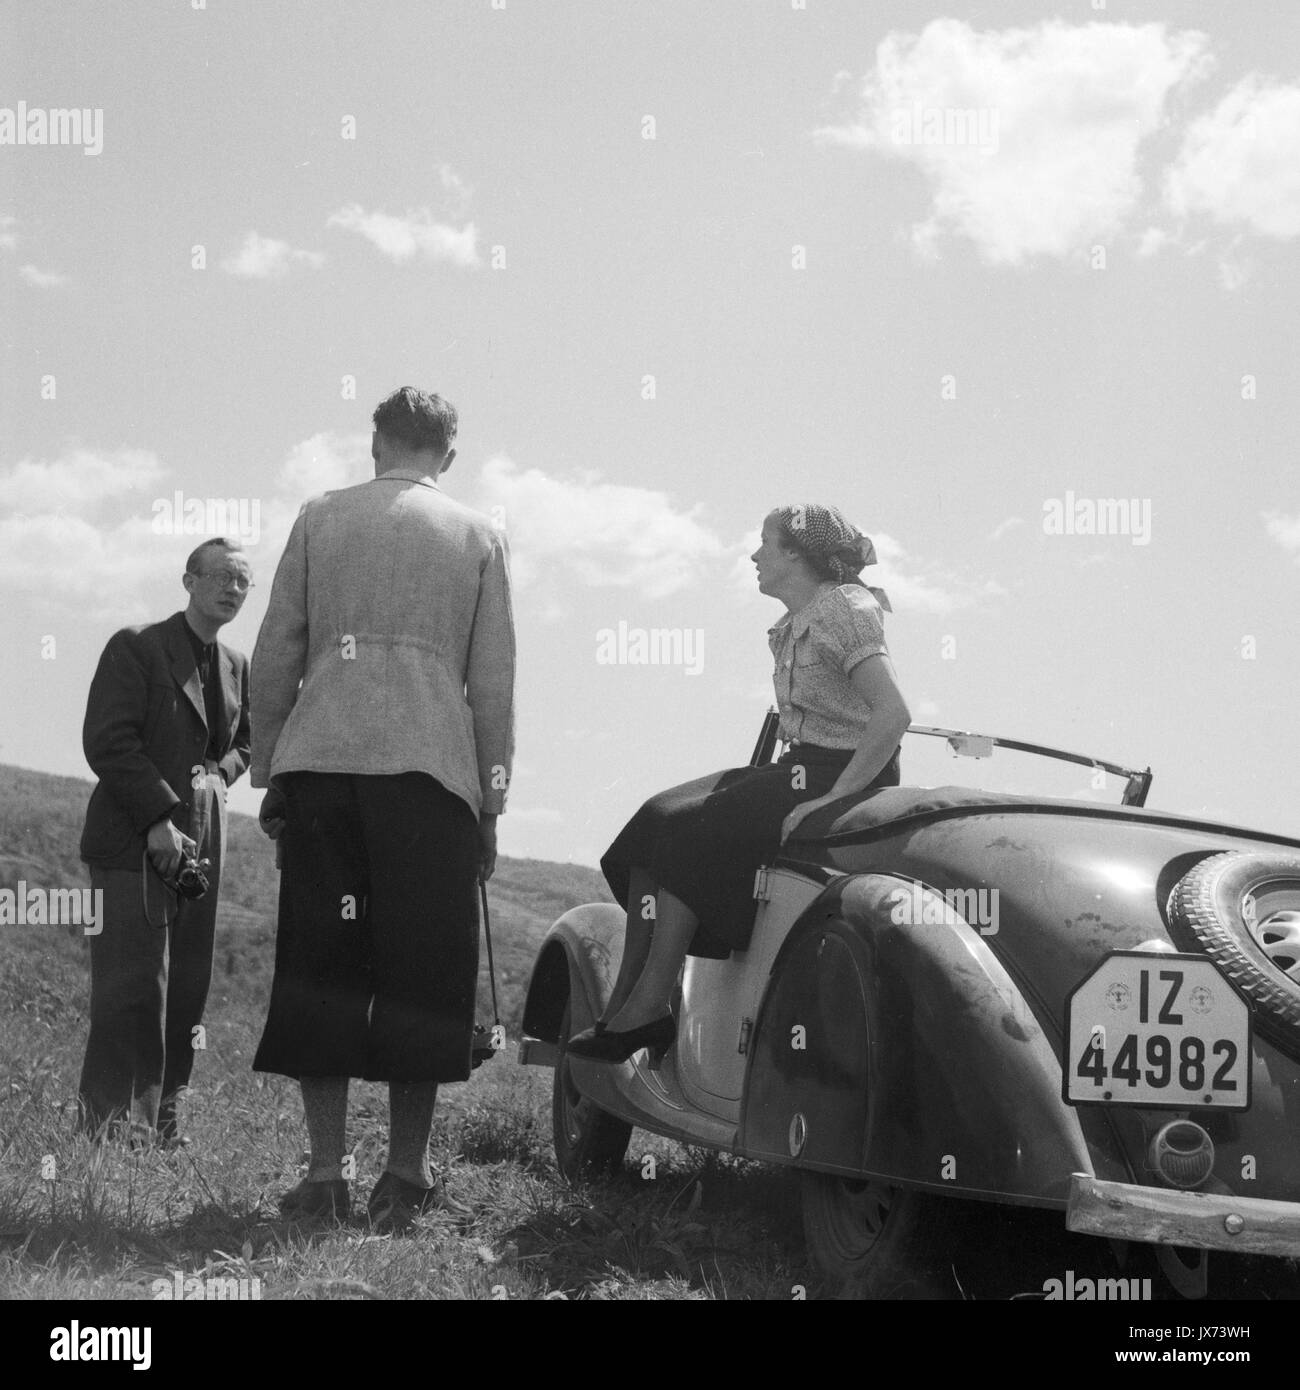 Three people talking beside car parked on grassy hill. - Stock Image